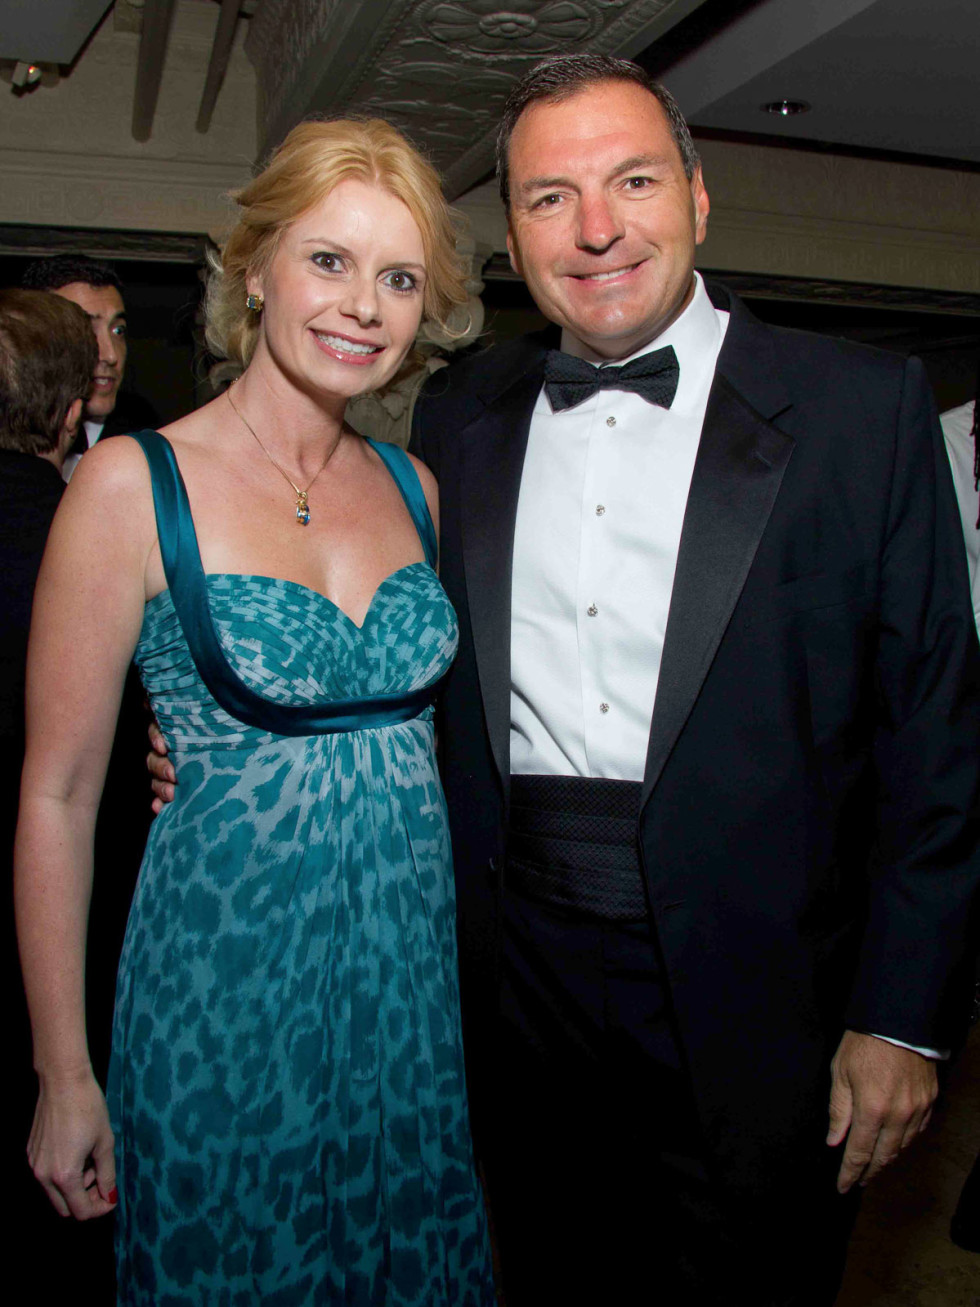 News_Big Brothers Big Sisters Gala May 2011_Valerie Palmquist_Tracy Dieterich